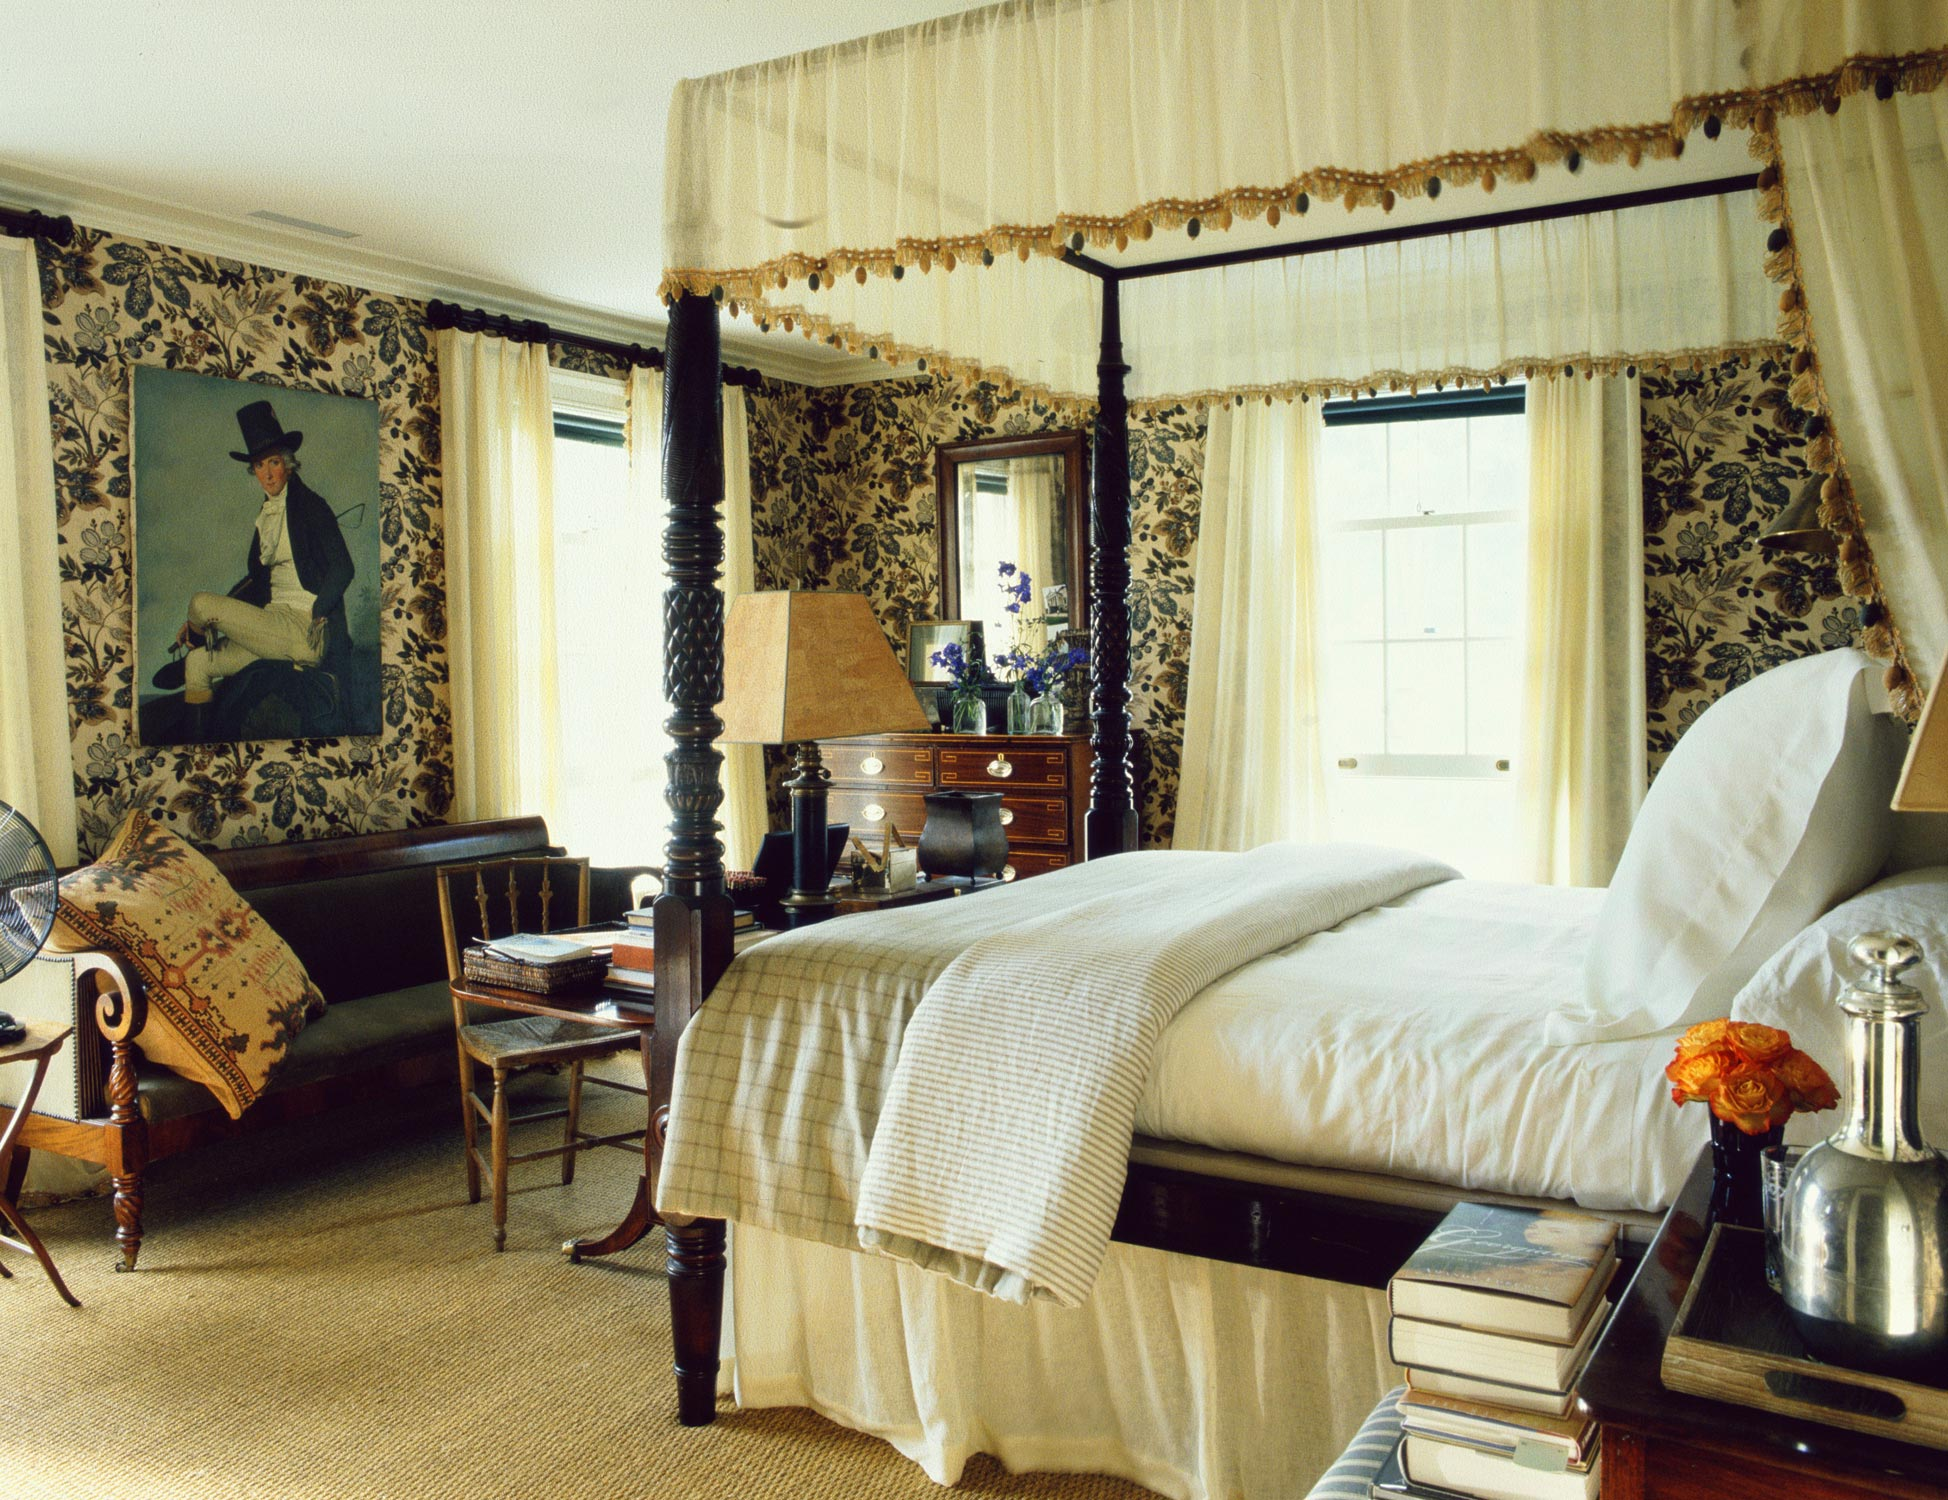 Gp schafer four poster bed colonial bedroom decor scene for Bedroom designs with four poster beds